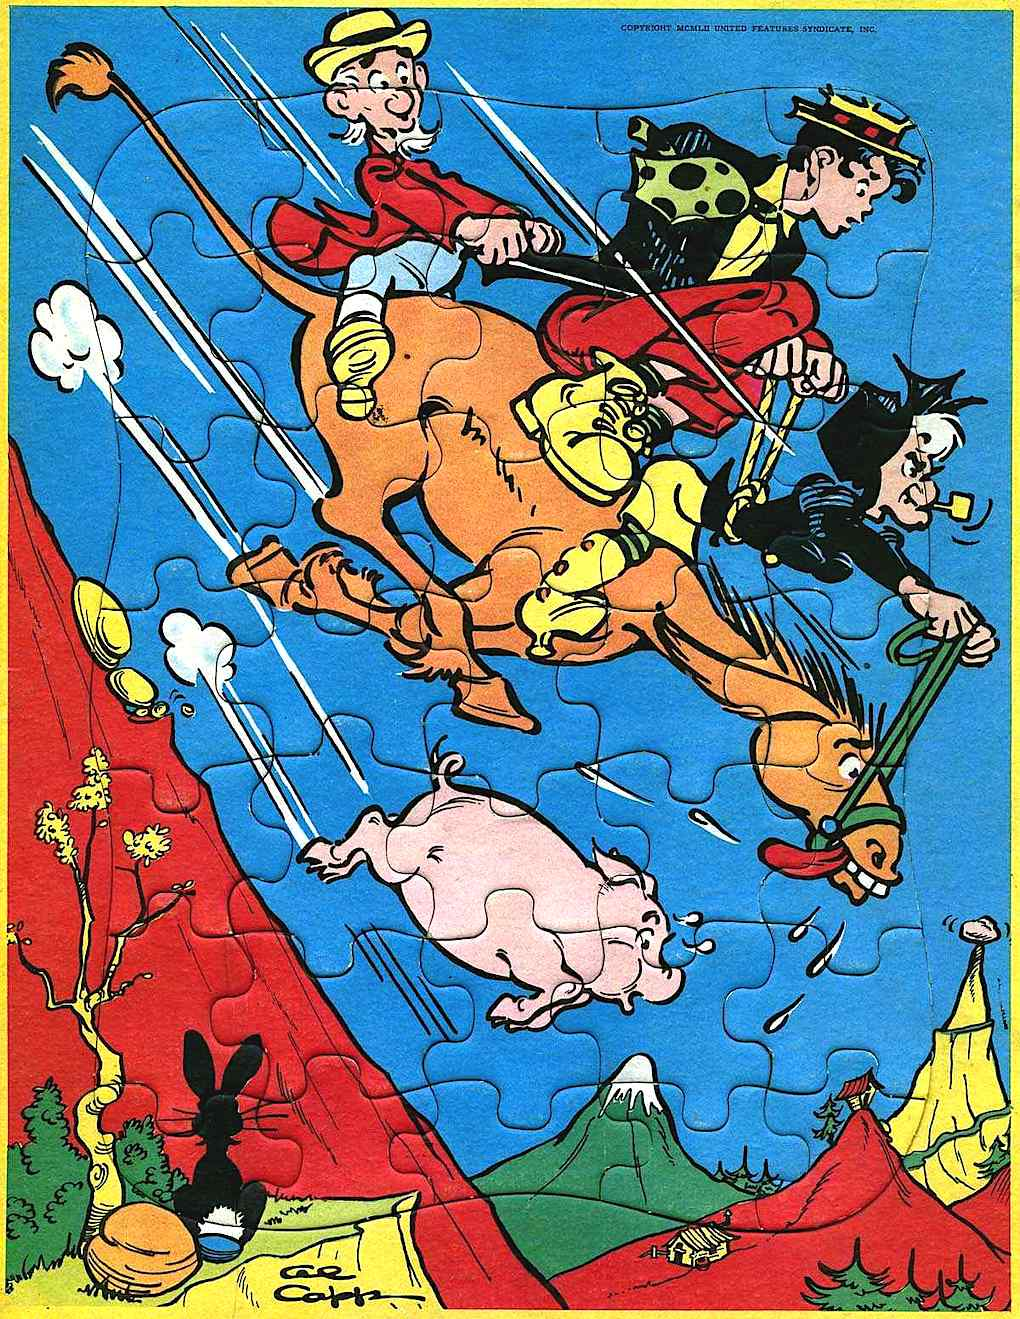 an Al Capp Little Abner color puzzel with Mammy Yokum, hillbillies on horseback galloping down a mountain